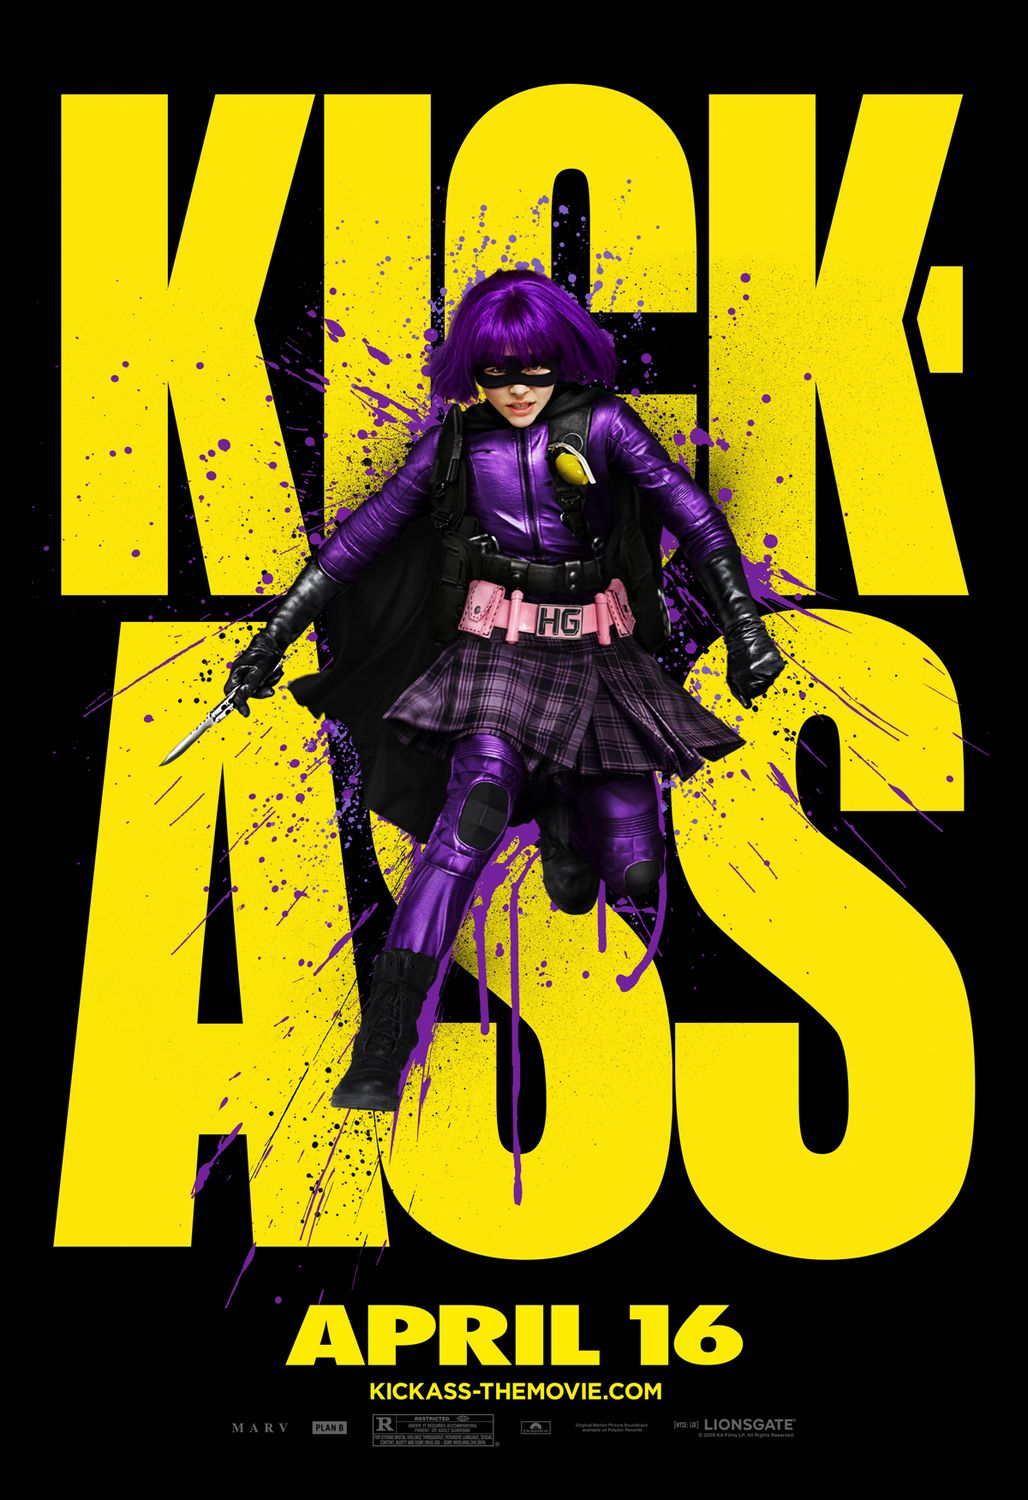 Kick Ass%252BCharacter%252BOne%252BSheet%252BMovie%252BPosters%252BSet%252B3%252B %252BChloe%252BGrace%252BMoretz%252Bas%252BHit Girl This entry was posted in Asian (Display All), Chinese, ...